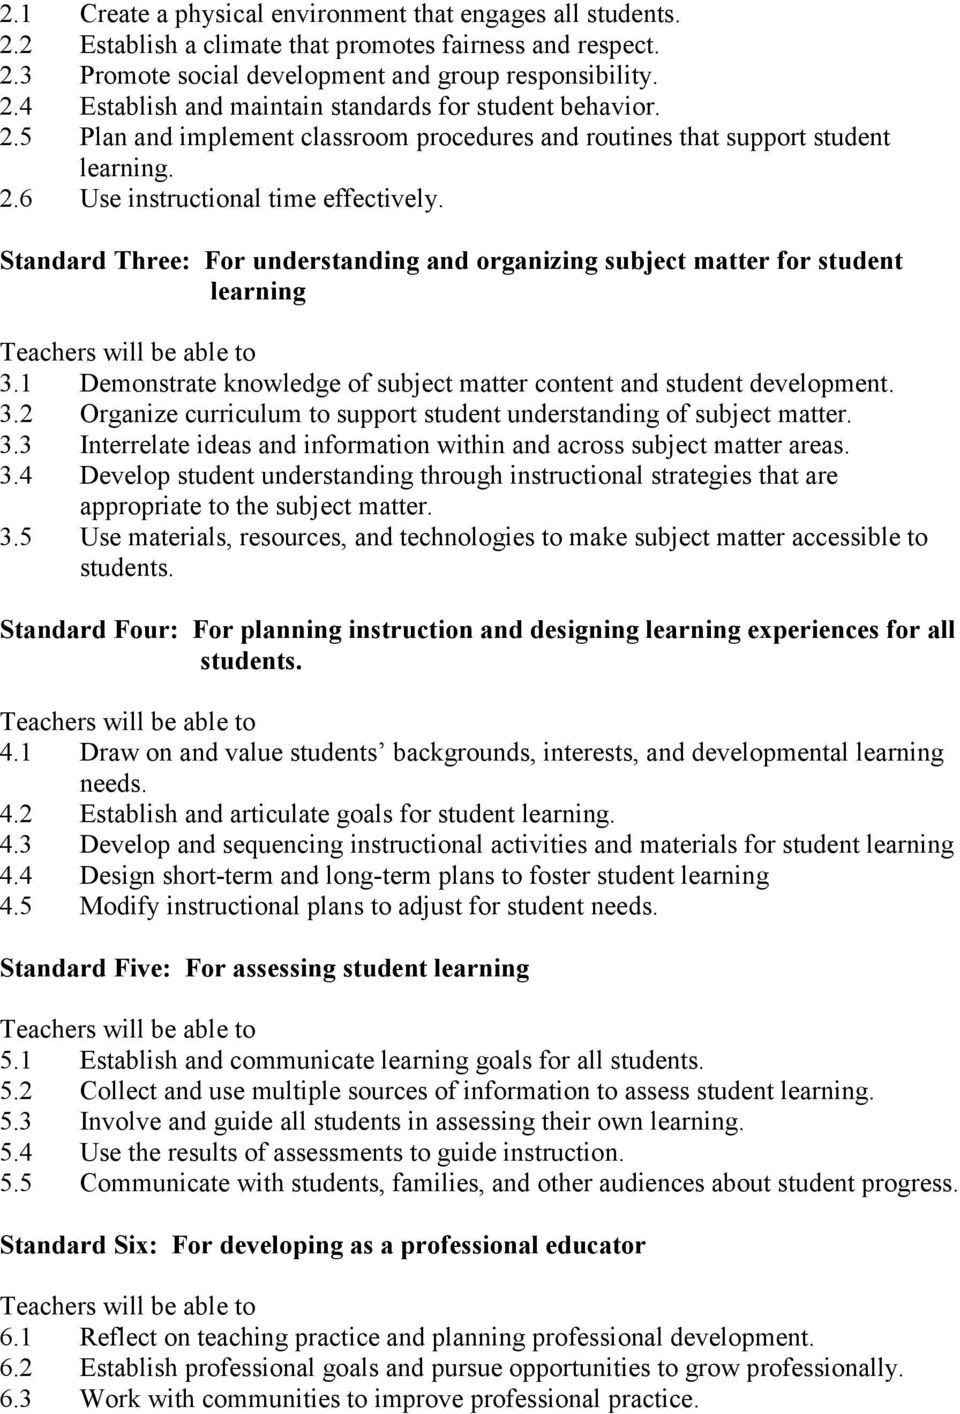 Standard Three: For understanding and organizing subject matter for student learning Teachers will be able to 3.1 Demonstrate knowledge of subject matter content and student development. 3.2 Organize curriculum to support student understanding of subject matter.